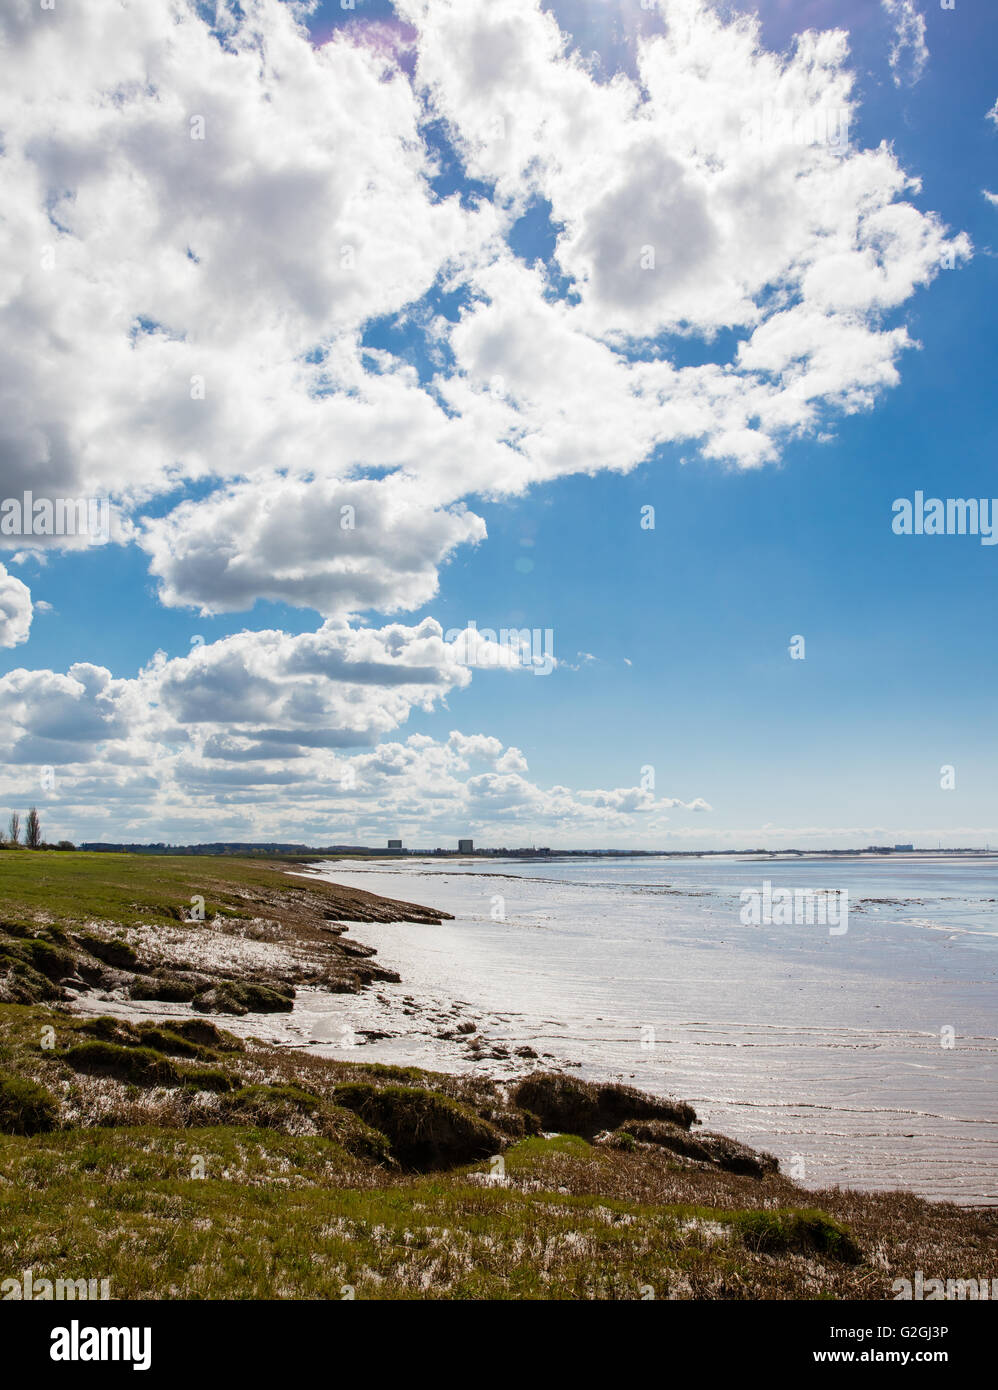 Severn estuary in Gloucestershire with the turbine halls of decomissioned Berkeley nuclear power station on the - Stock Image